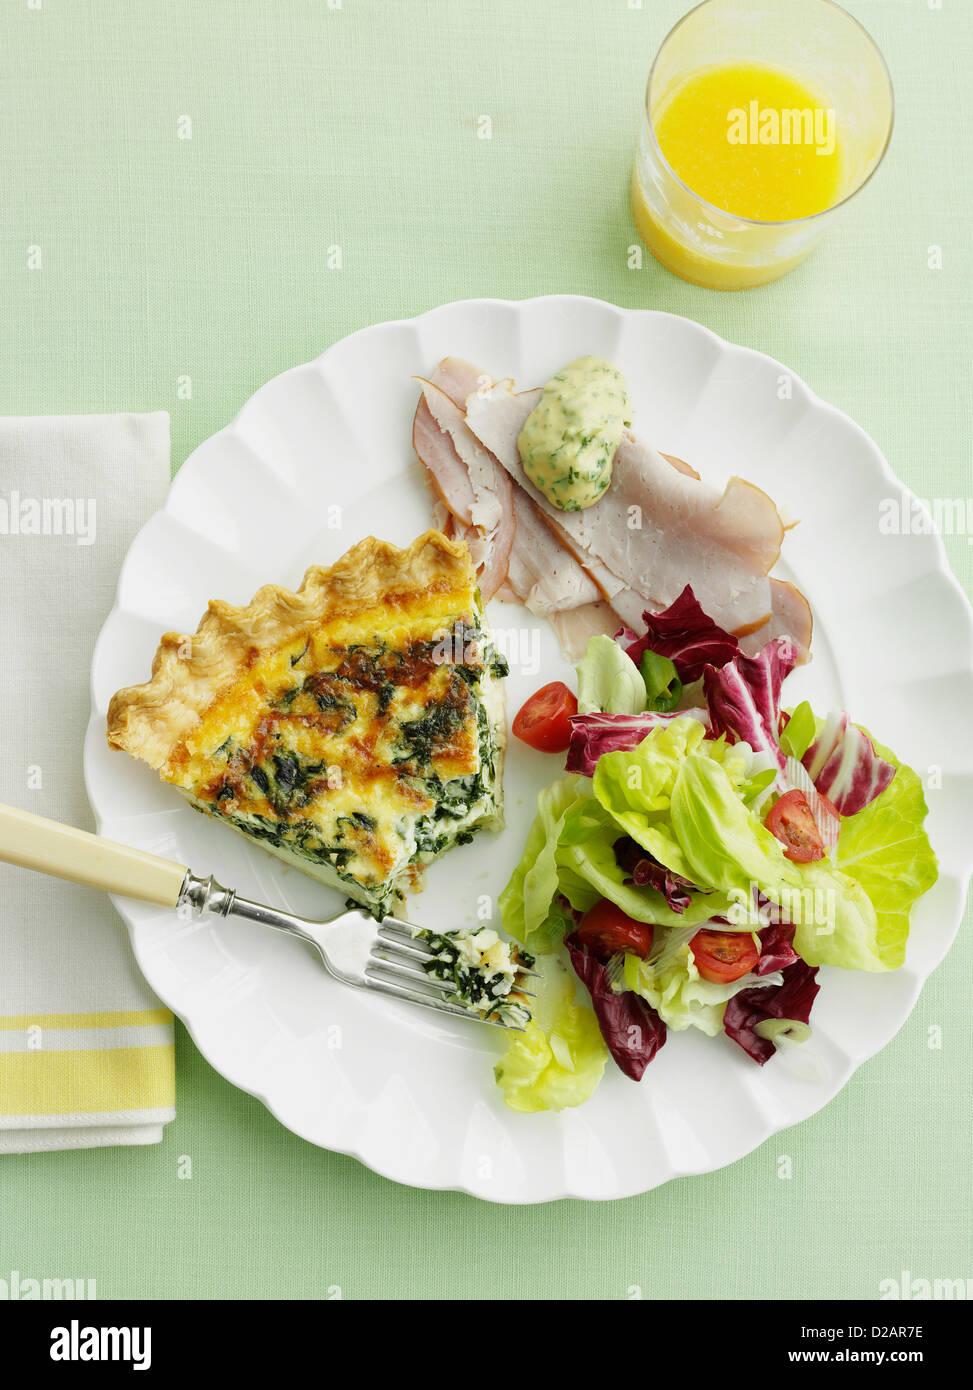 Plate of quiche, ham and salad - Stock Image